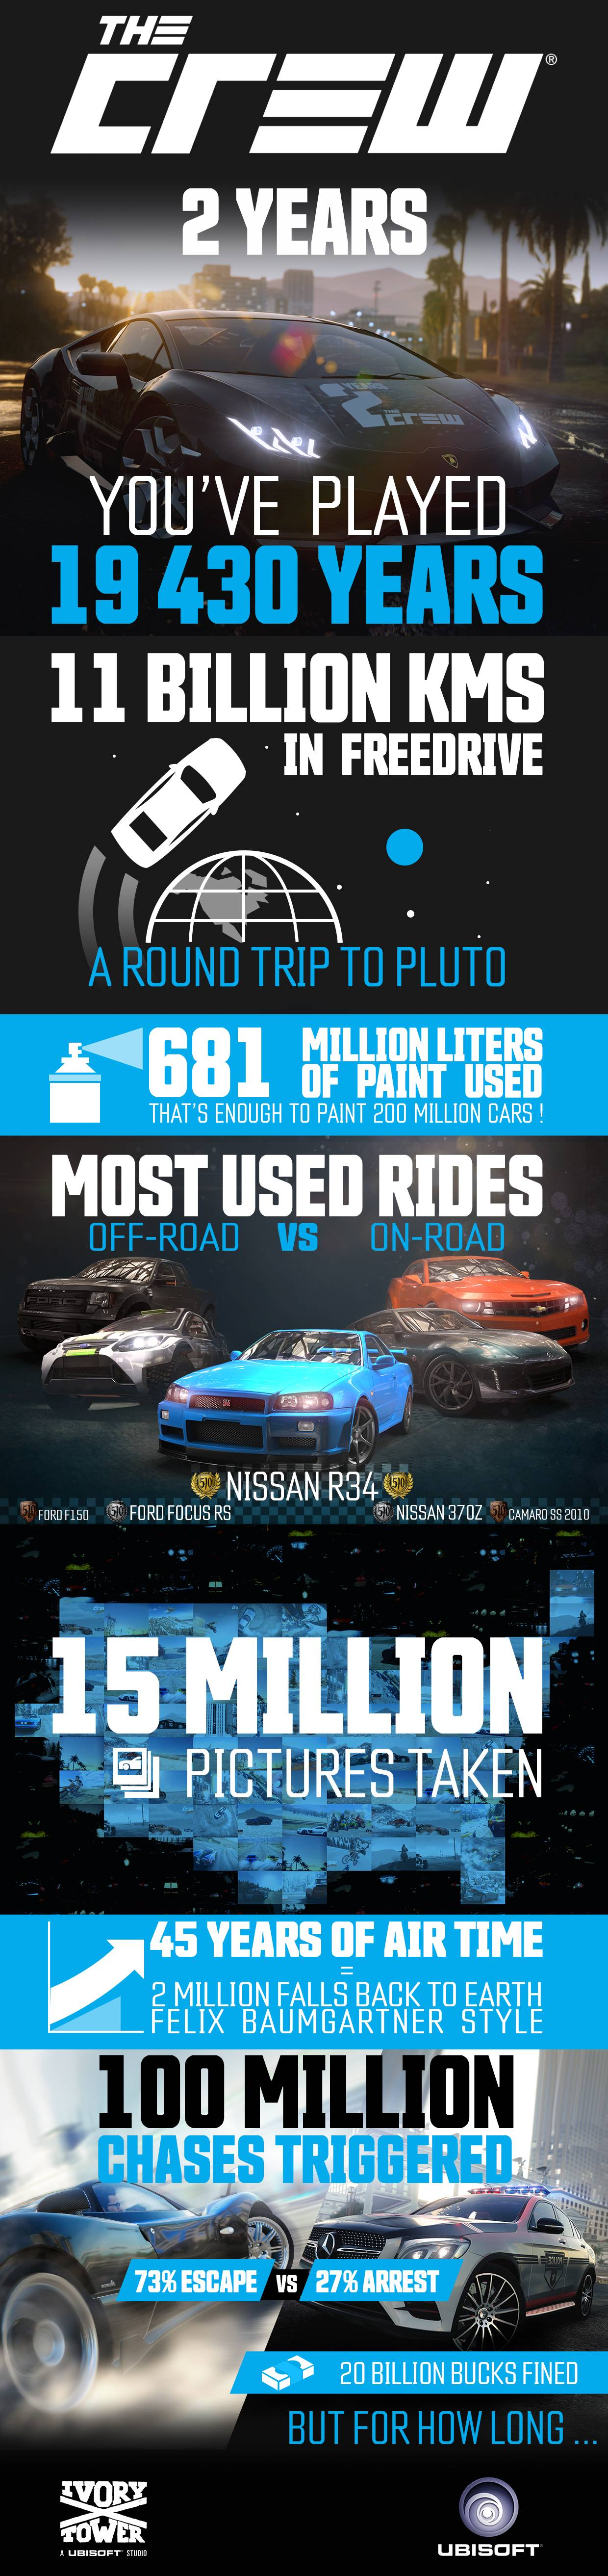 TheCrew_Infographic_2years_Final